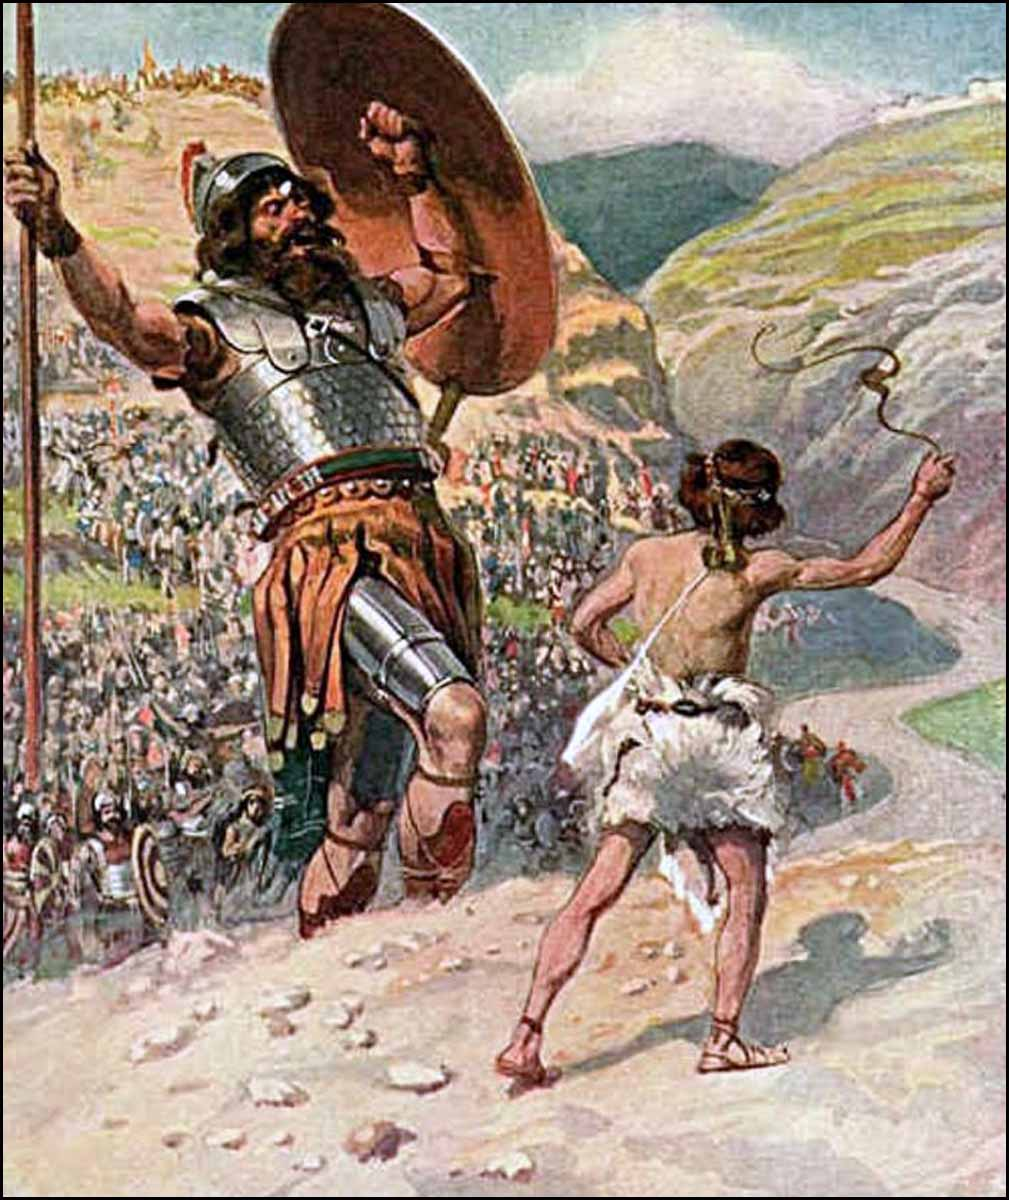 https://i1.wp.com/www.jesuswalk.com/david/images/tissot-david-slings-the-stone-1009x1500x300.jpg